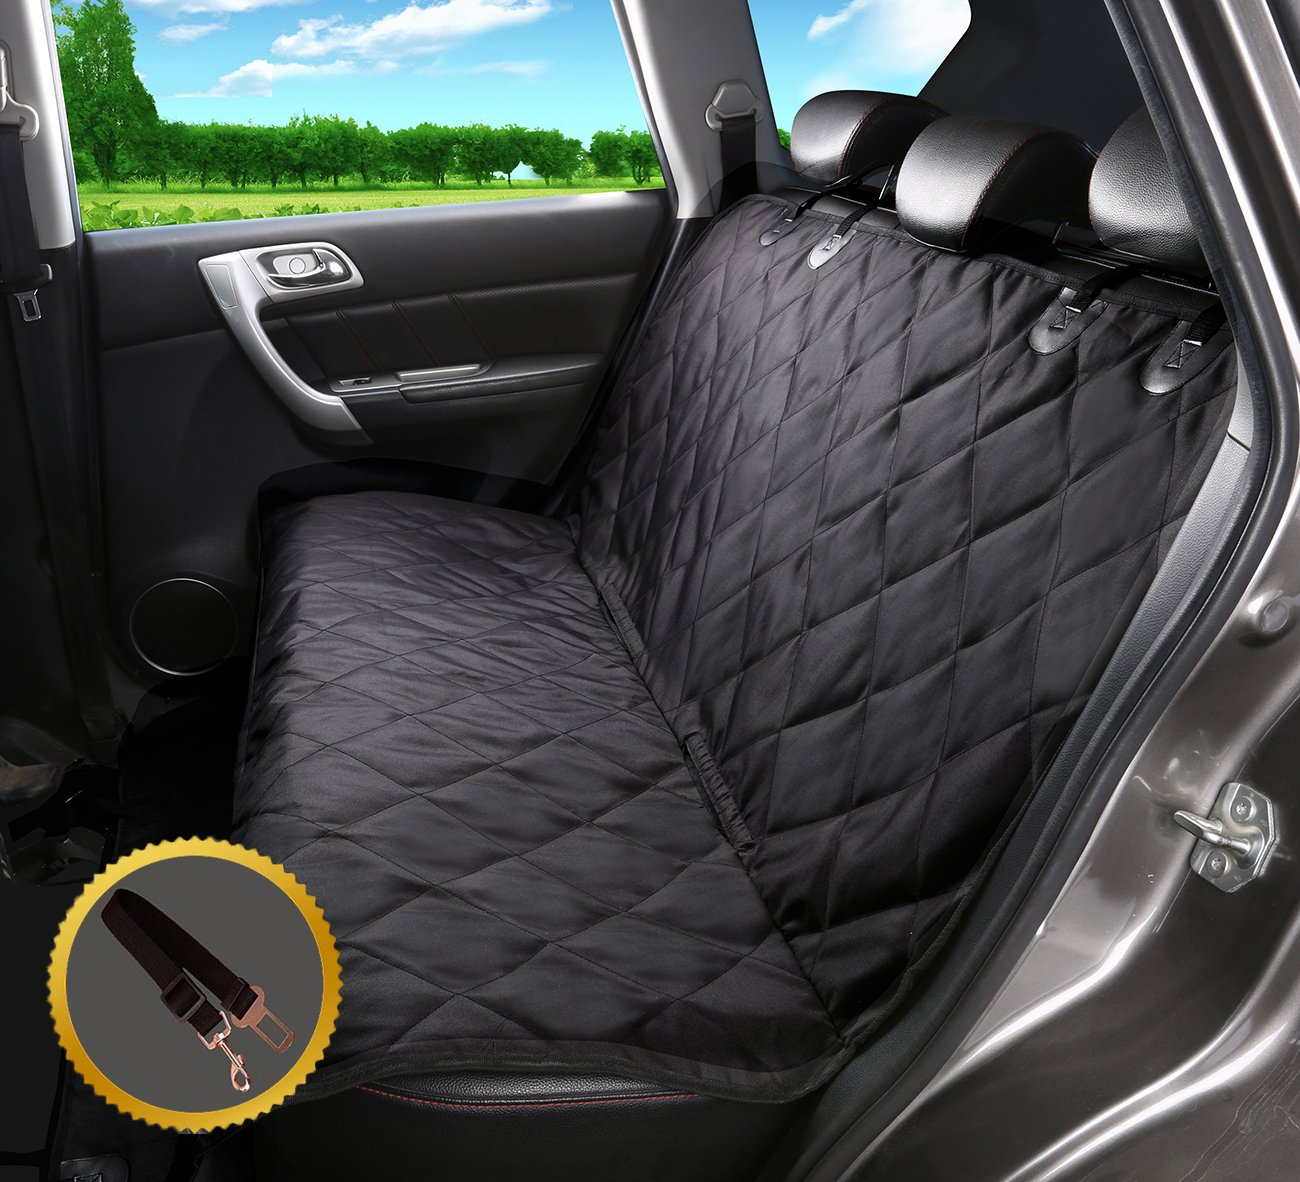 in accessories home dog mat seat slip protector item blanket window hammock mesh pet car from non waterproof carriers quilted cover viewing back